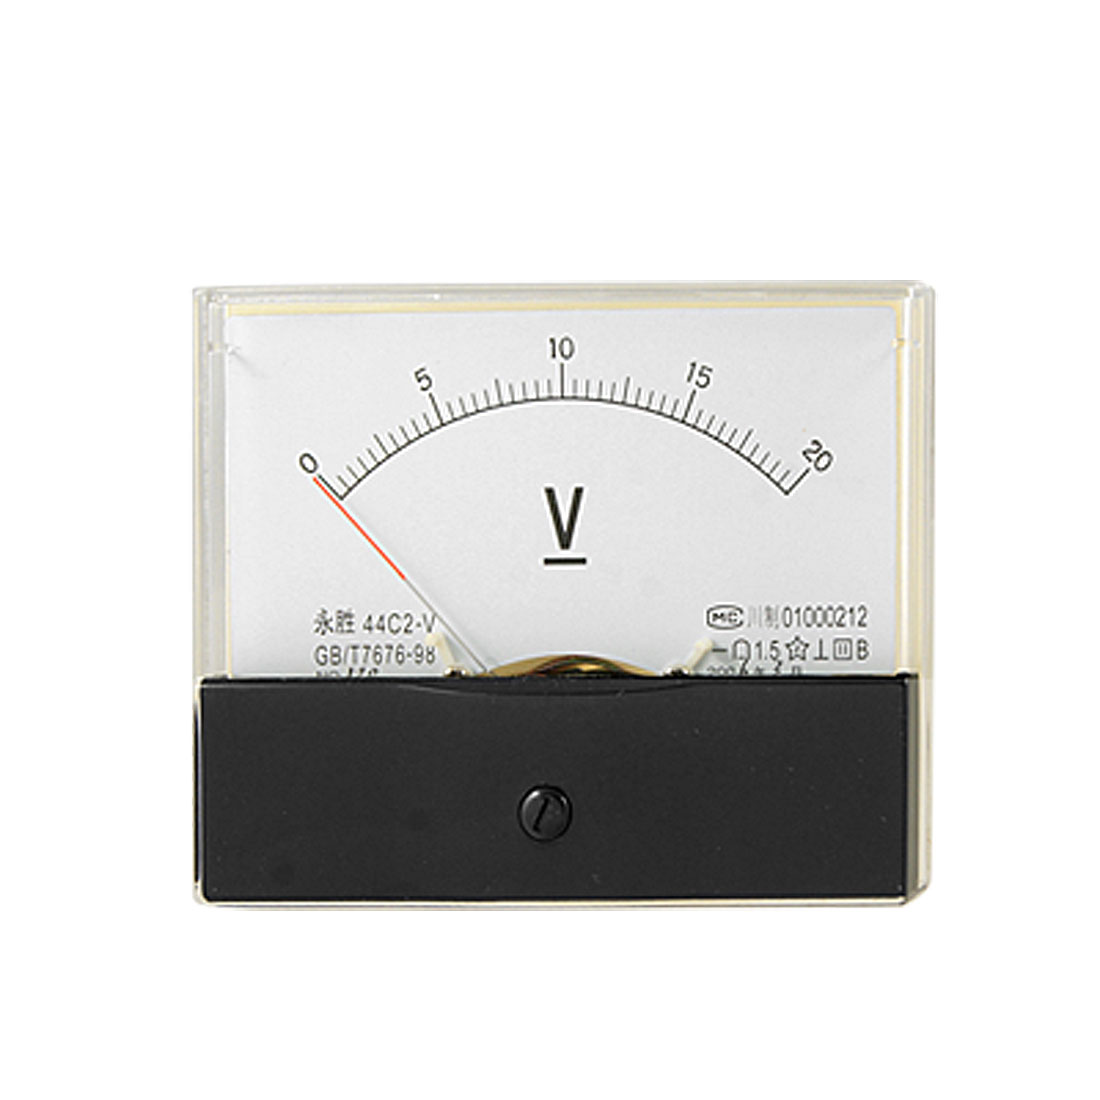 44C2 Fine Tuning 0-20V DC Voltage Panel Meter Analog Voltmeter Gauge